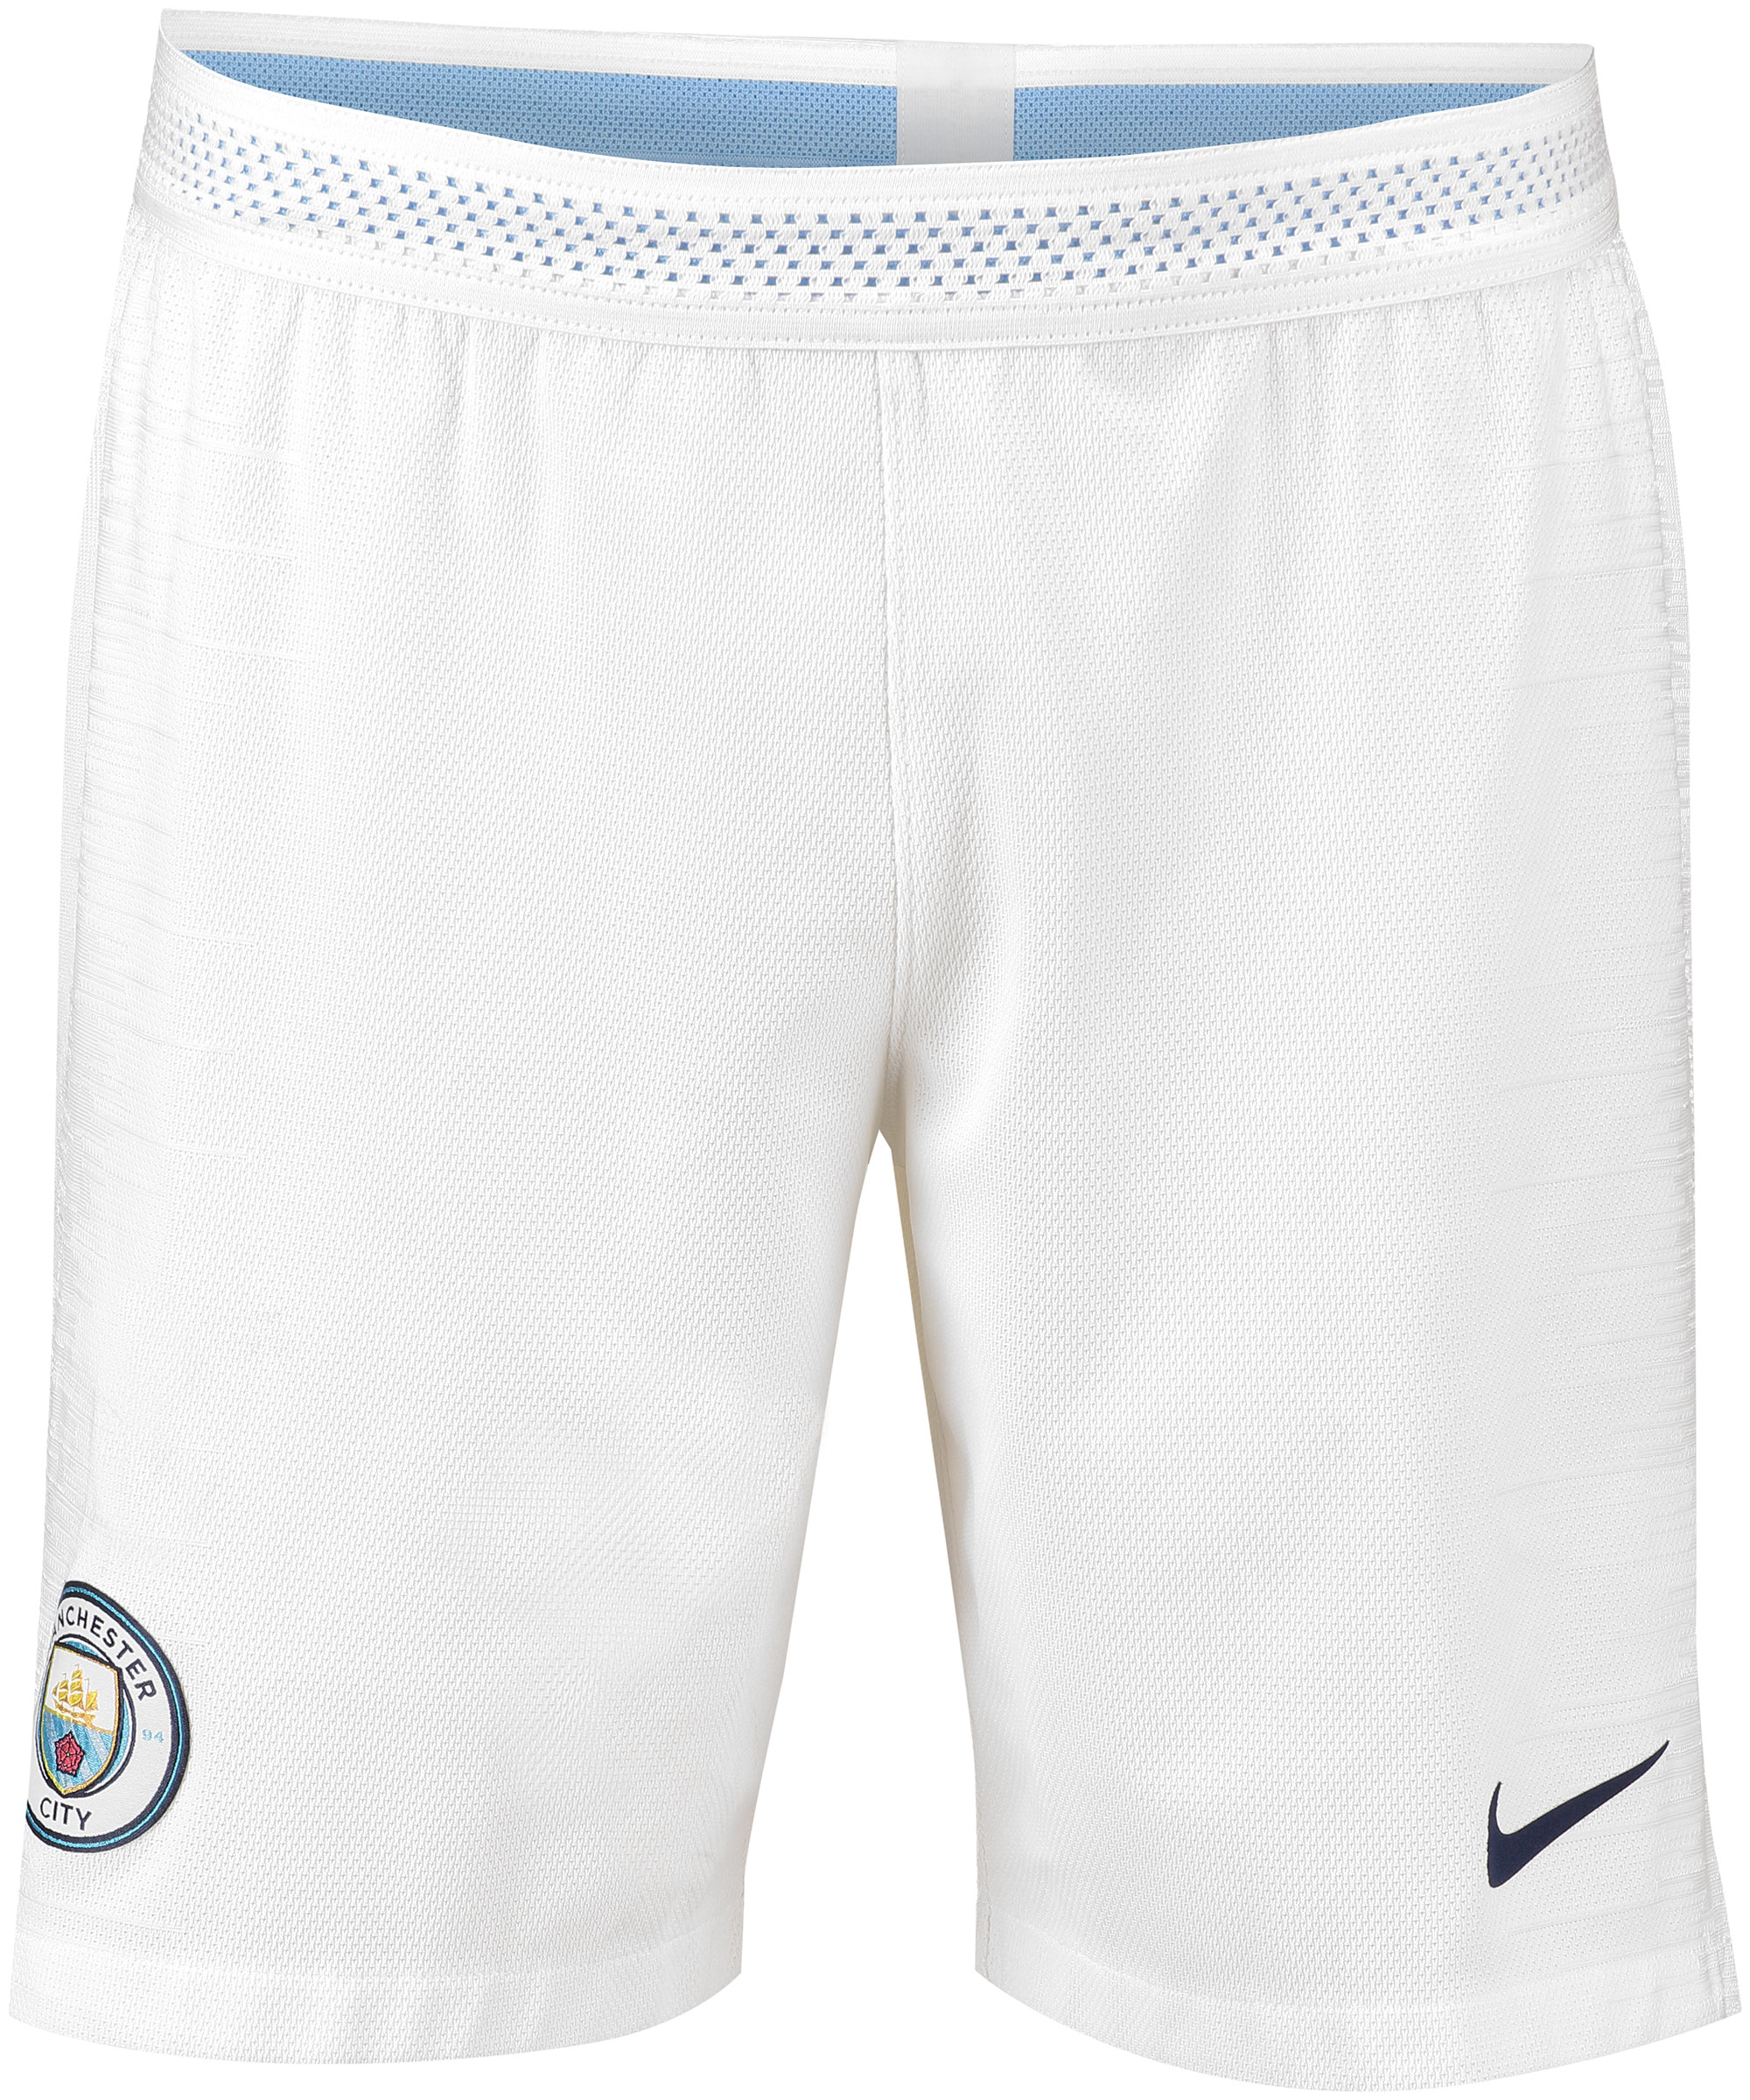 Shorts de match Vapor Manchester City Domicile 2018-2019